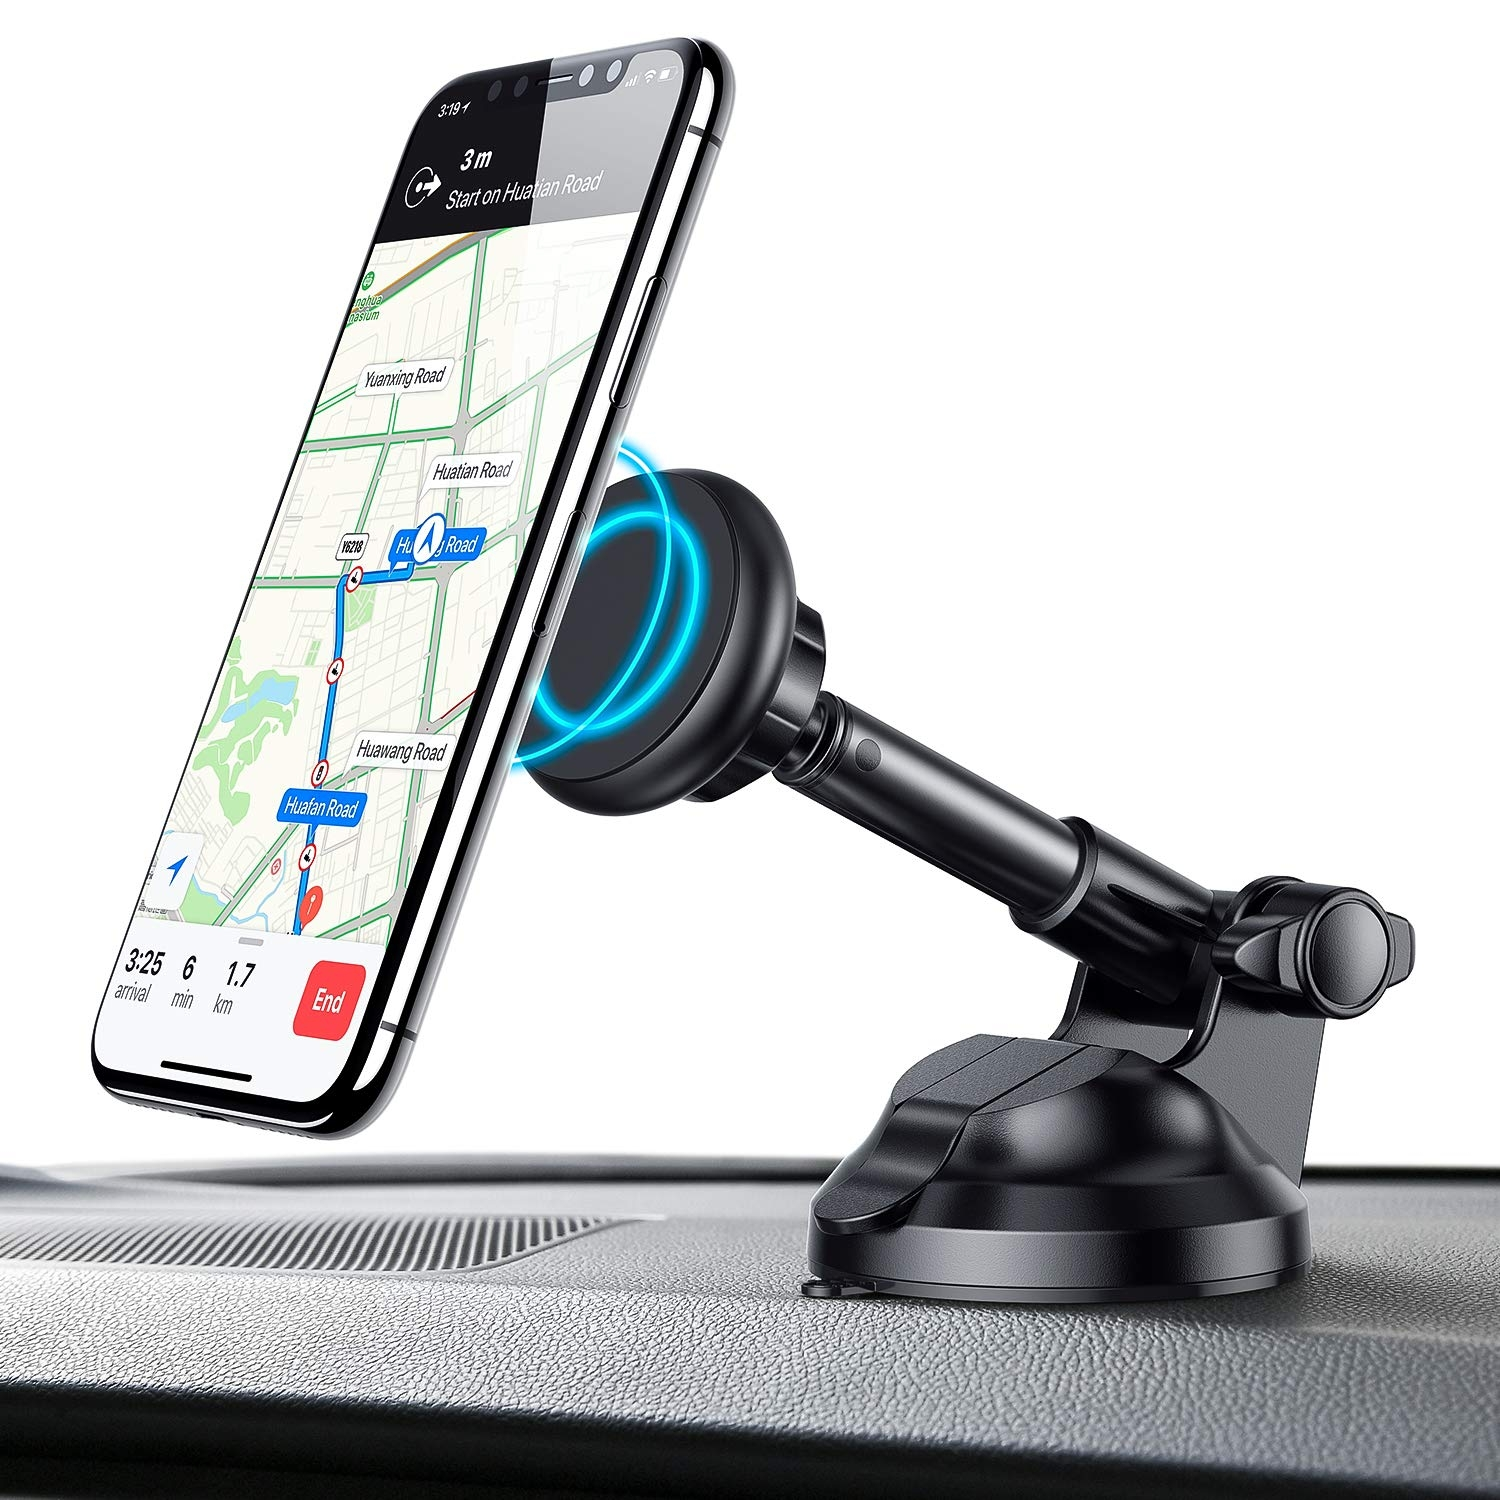 Hands Free Driving With This New Phone Mount